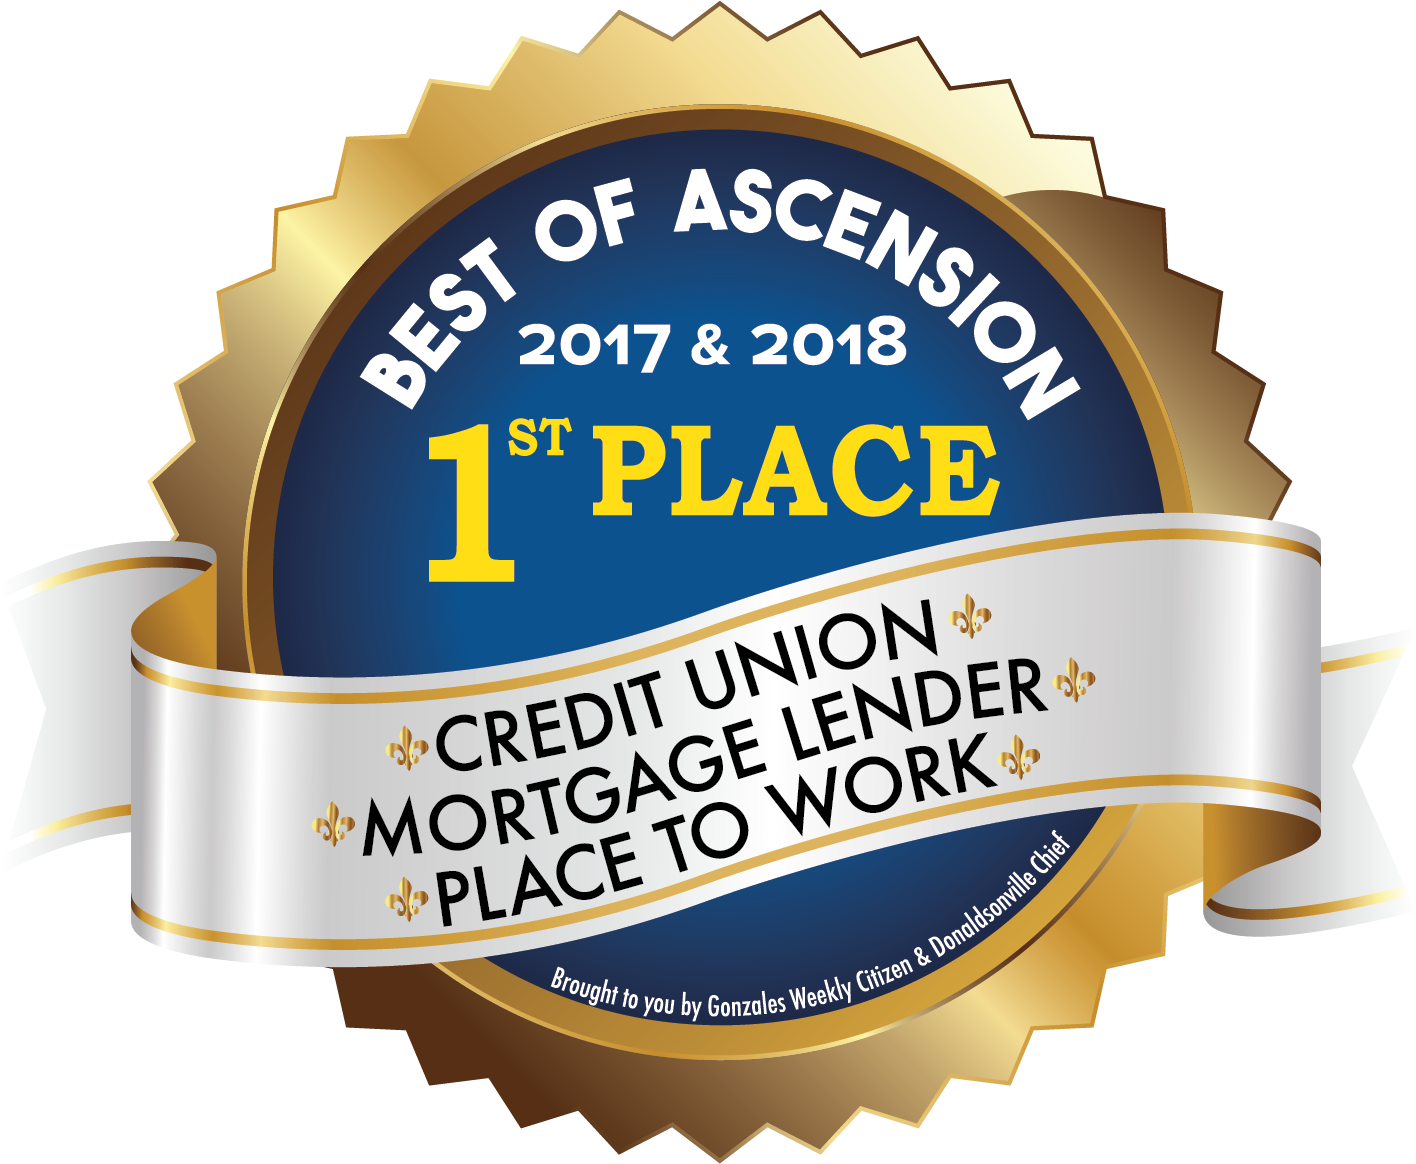 Best of Ascension 2017 and 2018 1st Place Award